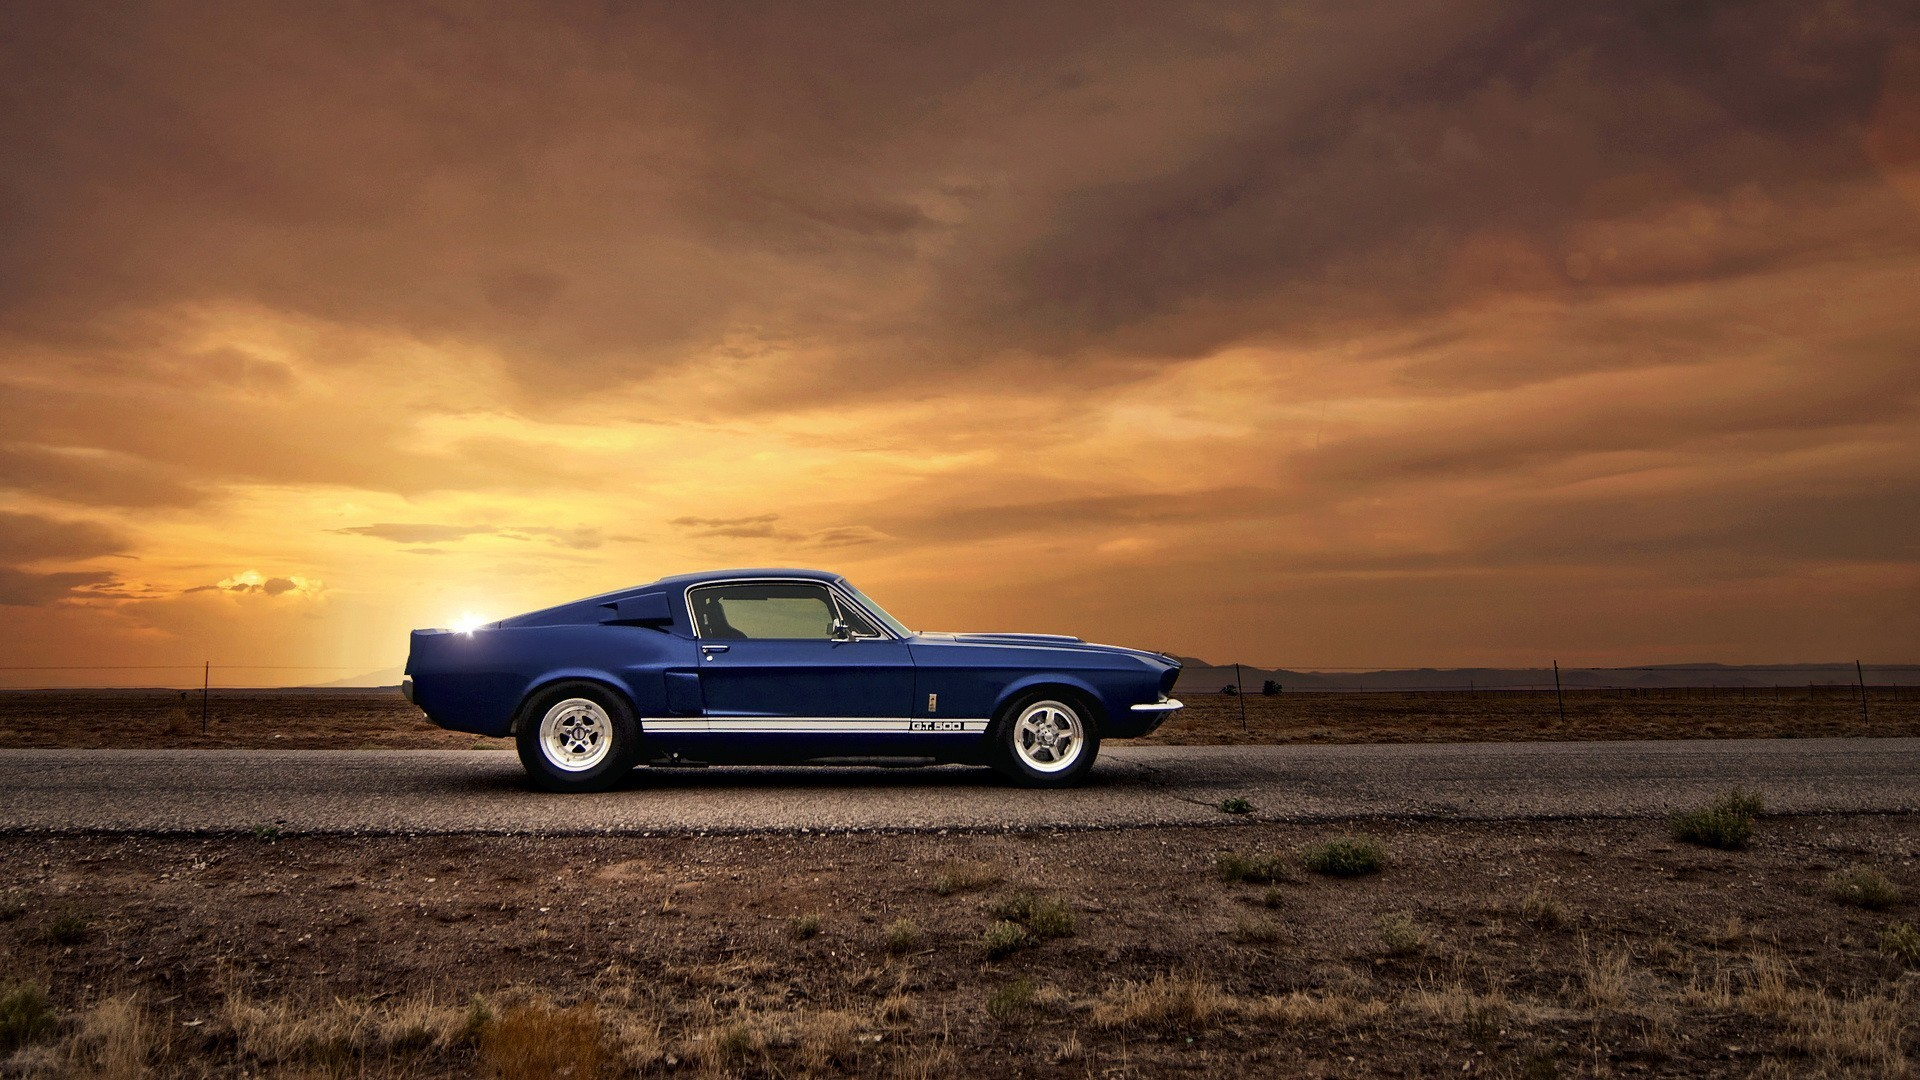 Res: 1920x1080, Ford Mustang GT500 Wallpaper 19 - 1920 X 1080